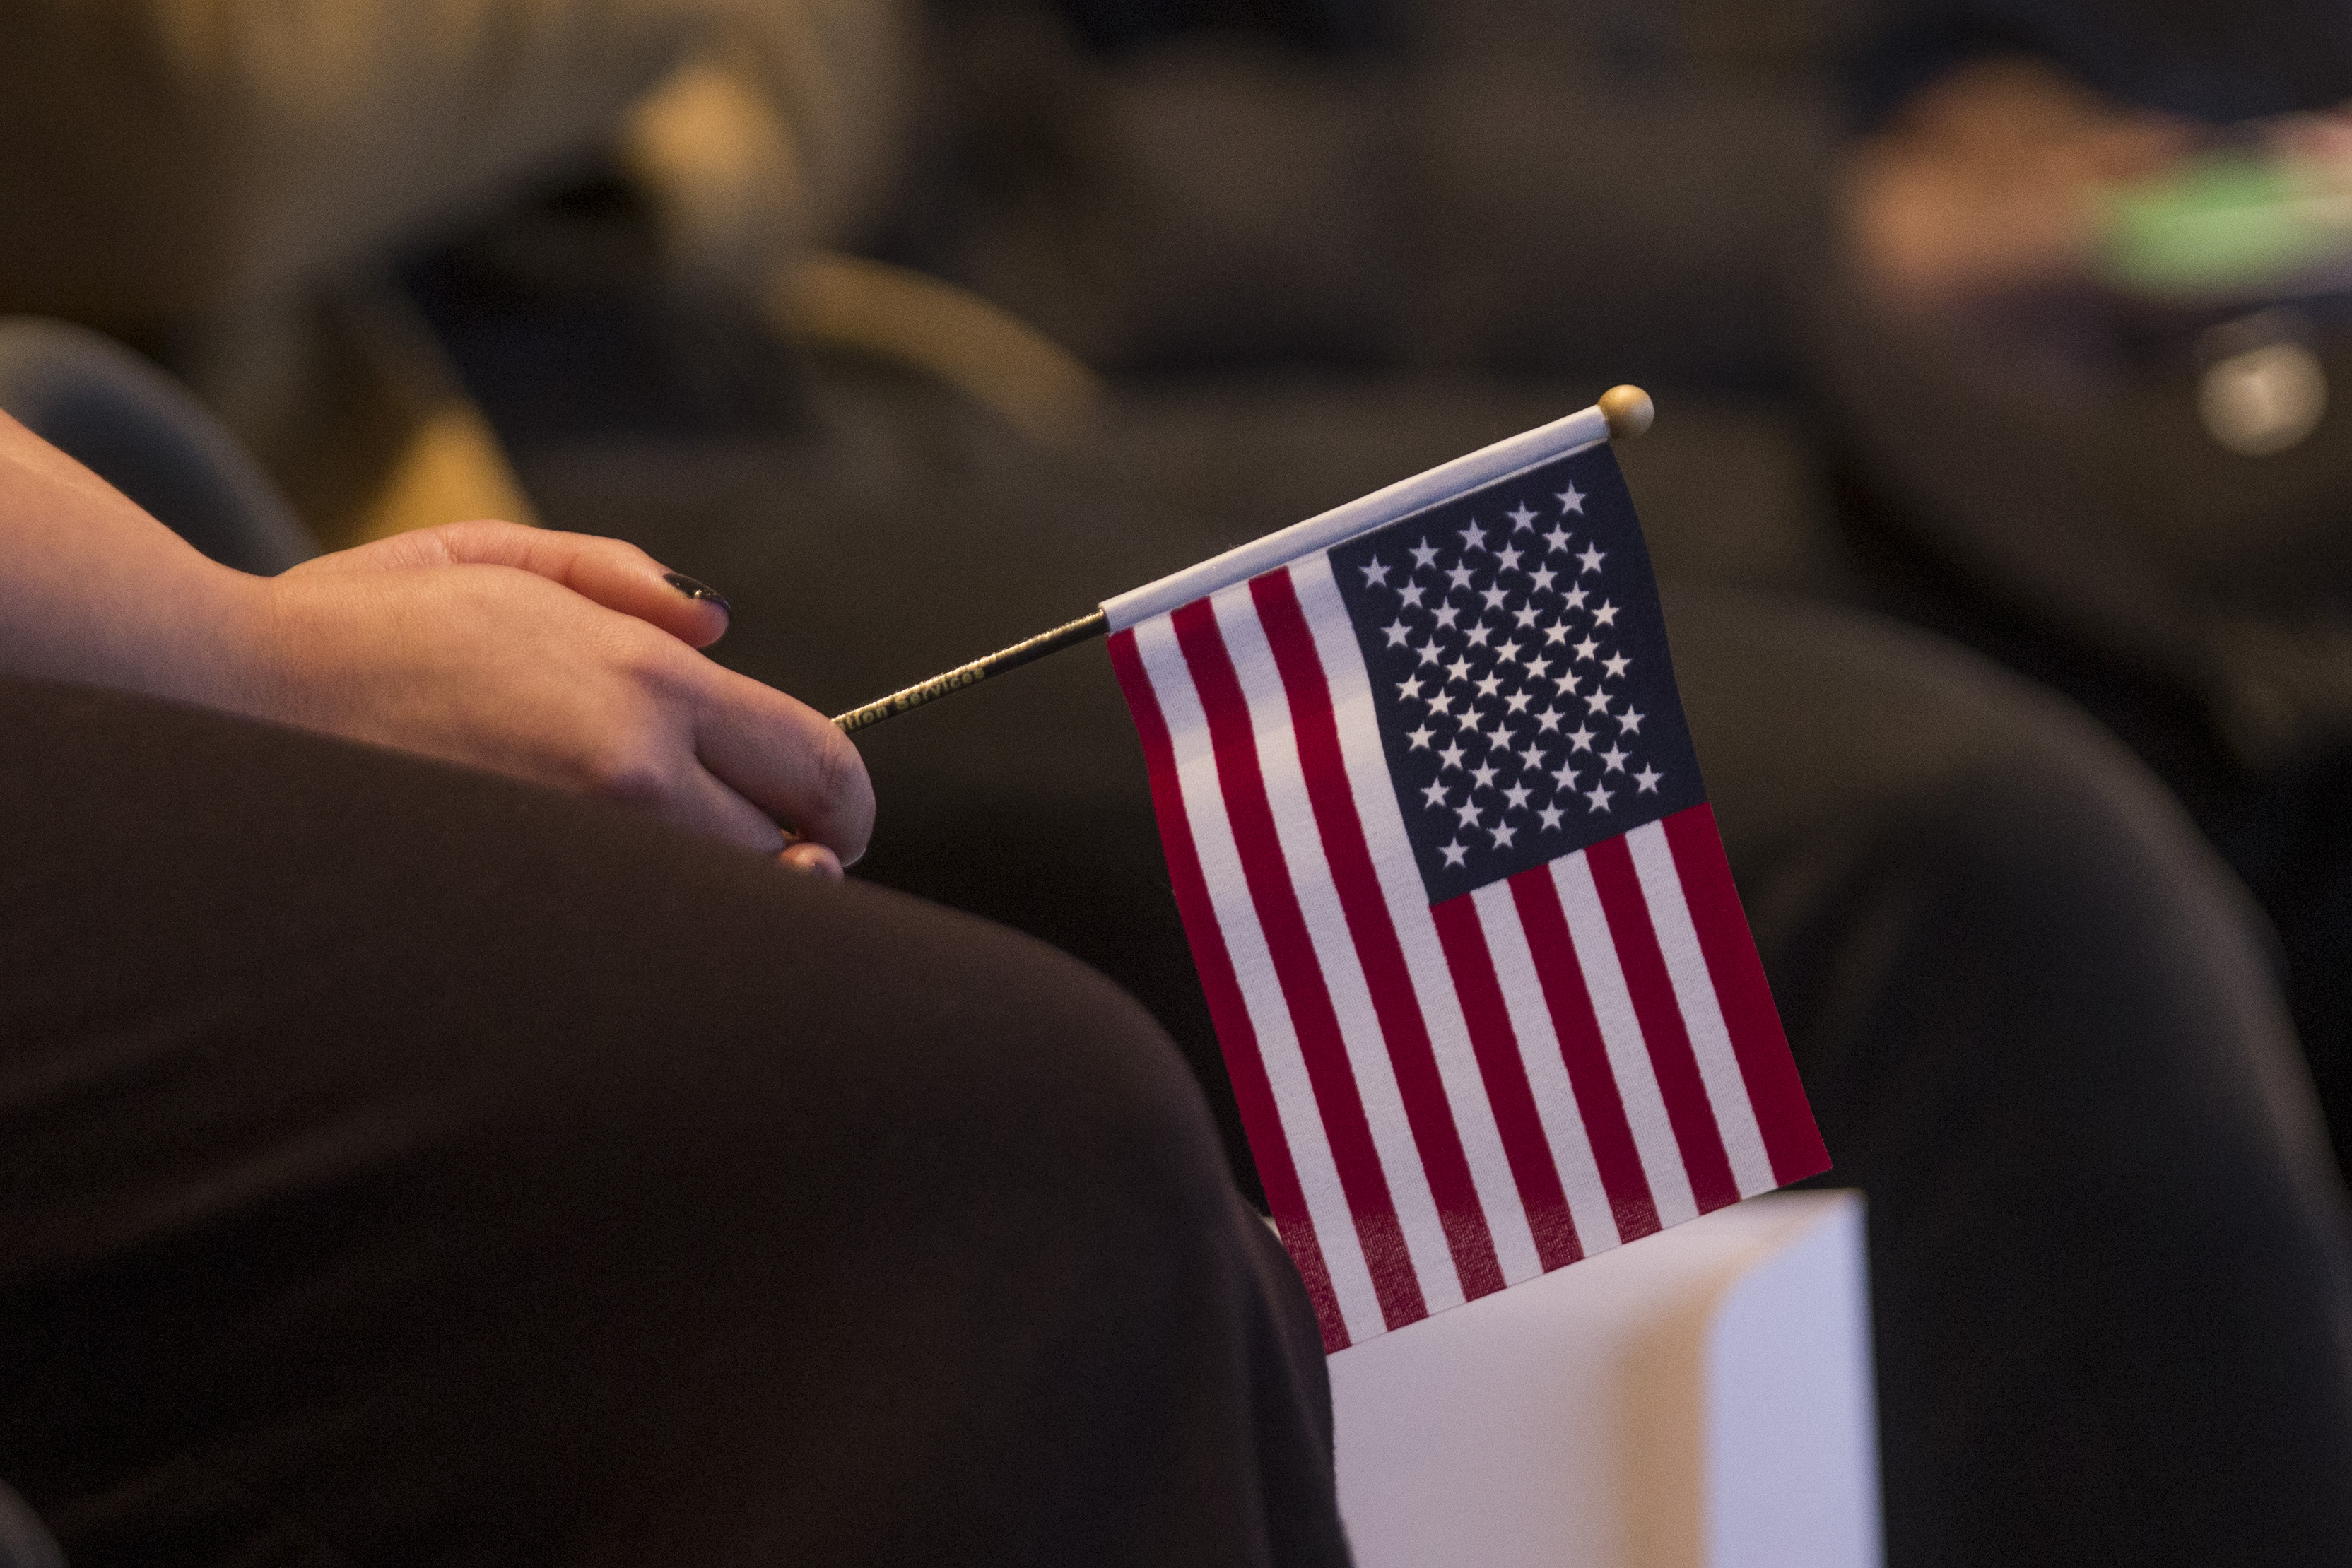 Immigrants Are Sworn In As U.S. Citizens During Naturalization Ceremony